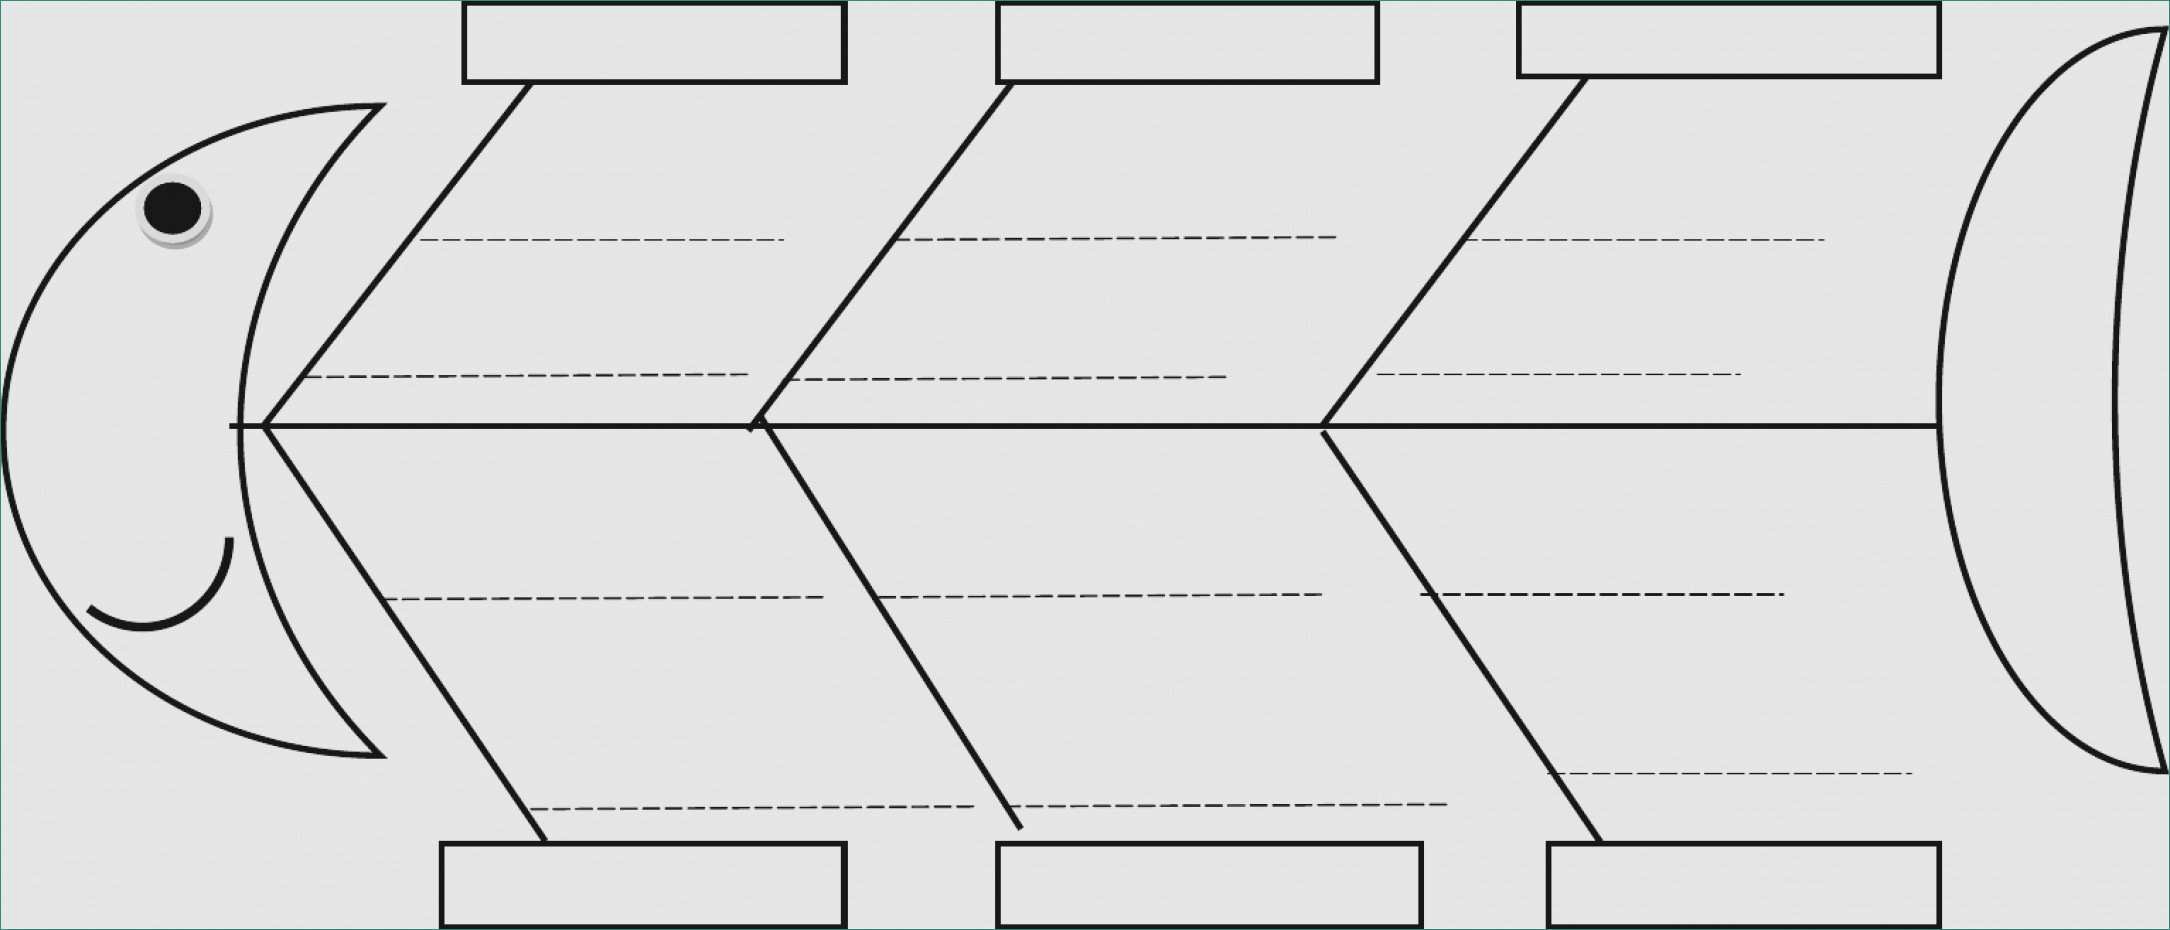 Blank Fishbone Diagram Template Fresh Blank Cause and Effect Diagram